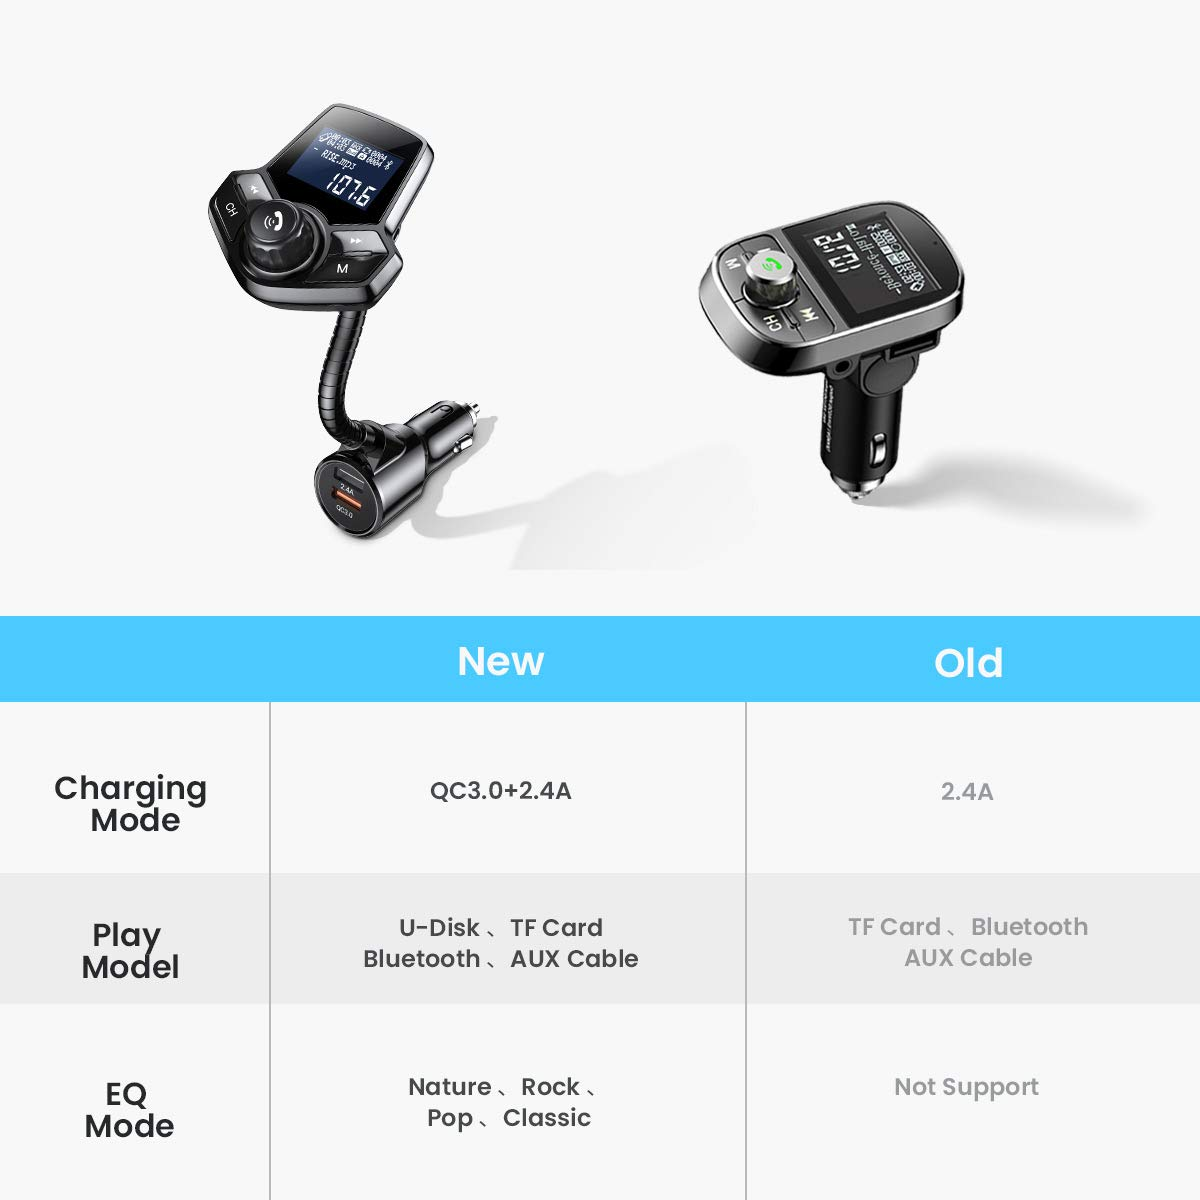 AINOPE Bluetooth FM Transmitter for Car, Upgrade V4.2 Car Radio Bluetooth Adapter with QC3.0 & 2.4A Fast Charging, Hands-Free FM Transmitter Bluetooth for Large Screen Support TF/SD Card, U-Disk by AINOPE (Image #6)